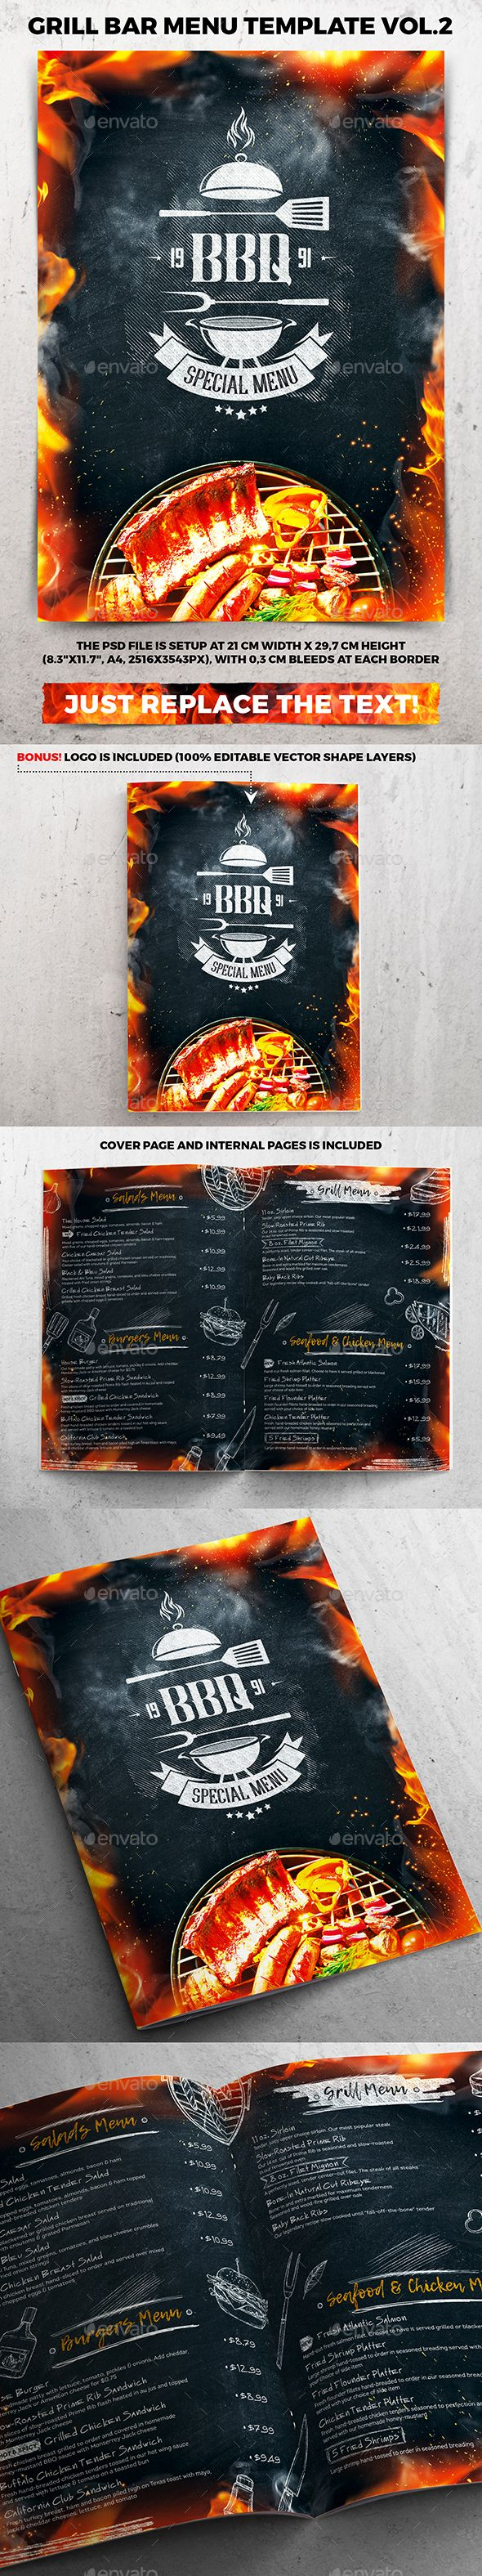 Grill Bar Menu Template Vol  Menu Templates Bar Menu And Menu